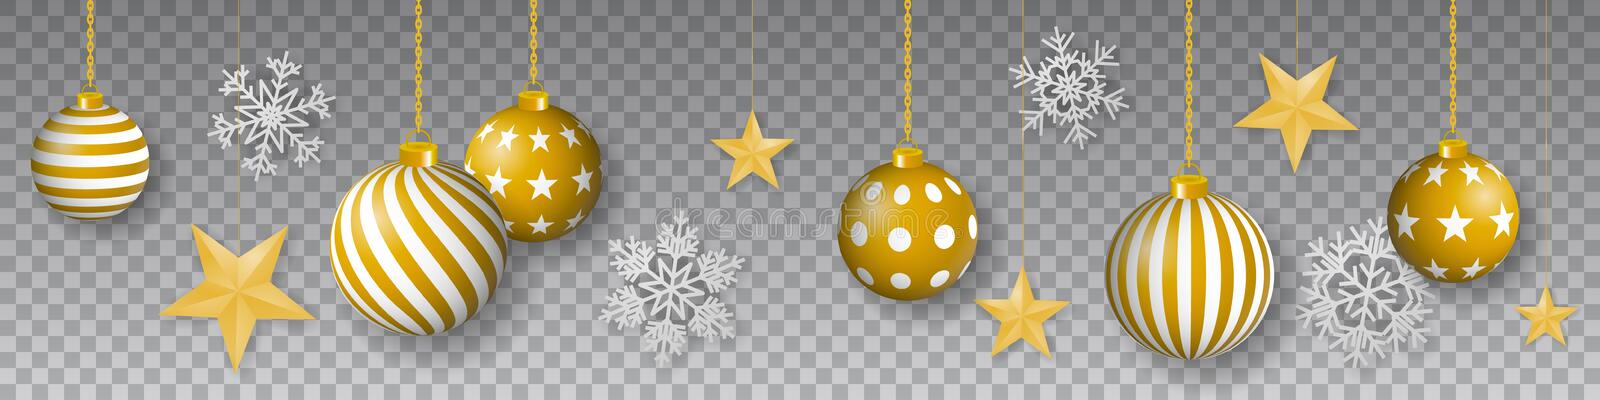 Seamless winter vector with hanging gold colored decorated christmas ornaments, golden stars and snowflakes on gray background royalty free illustration